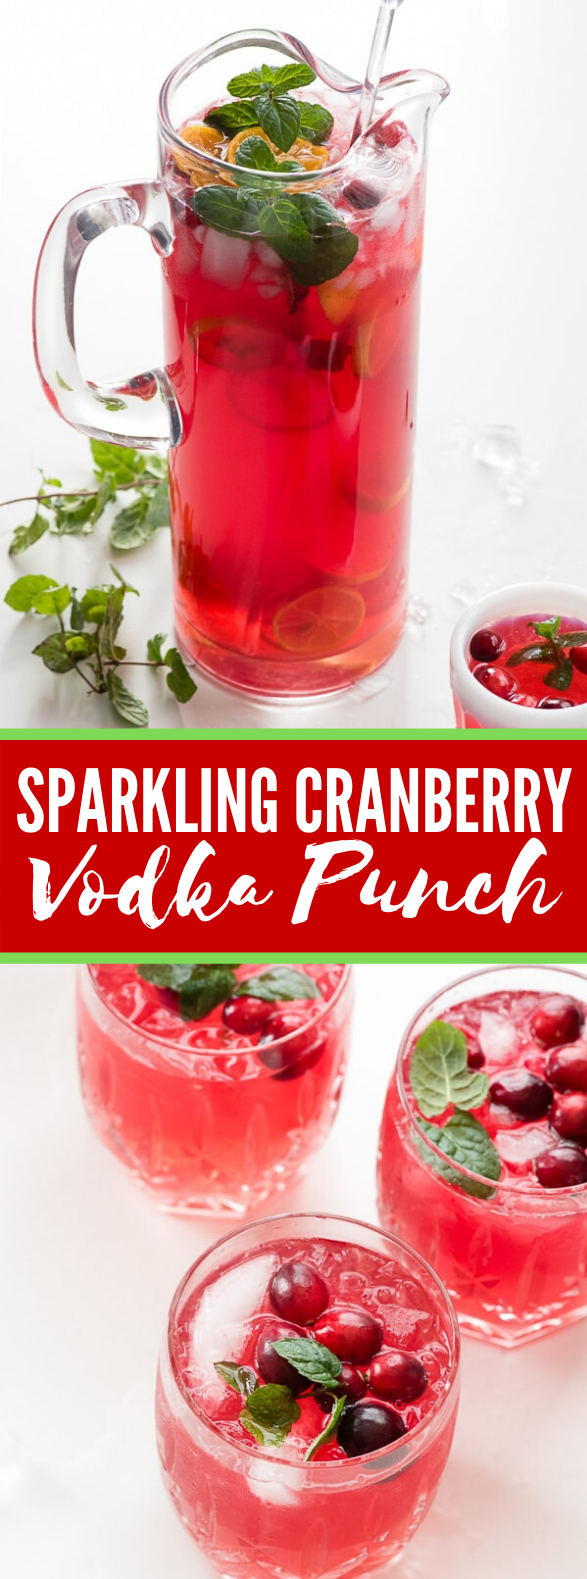 SPARKLING CRANBERRY VODKA PUNCH #drinks #cocktails #vodka #punch #sparkling #vodkapunch